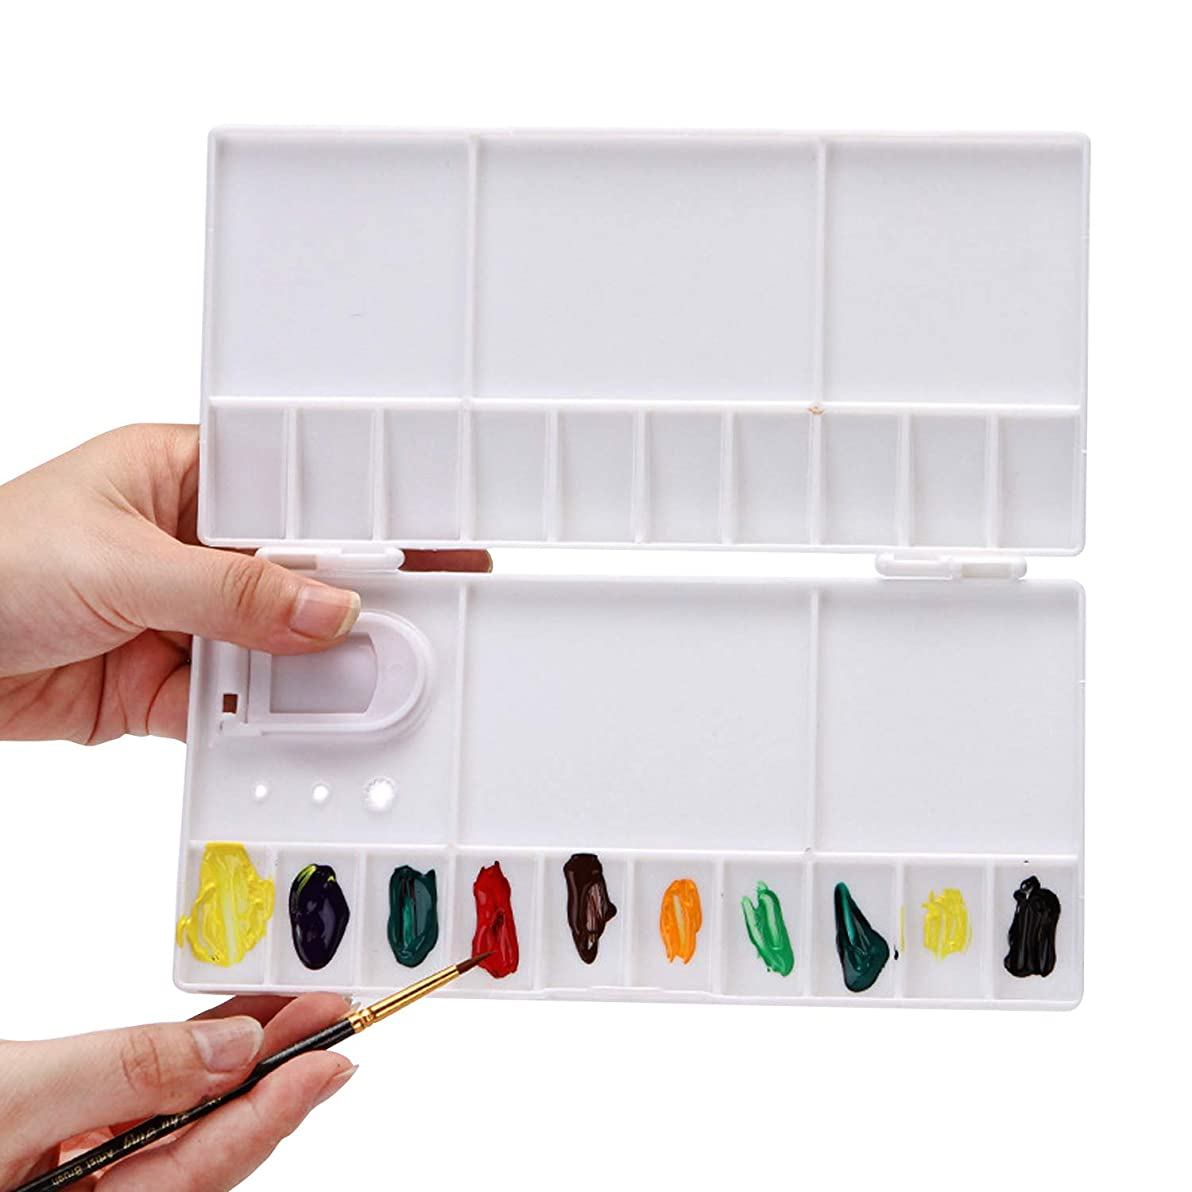 Honbay 25 Wells Plastic Folding Palette Box with Thumb Hole for Watercolors, Gouache, Acrylic and Oil Paint